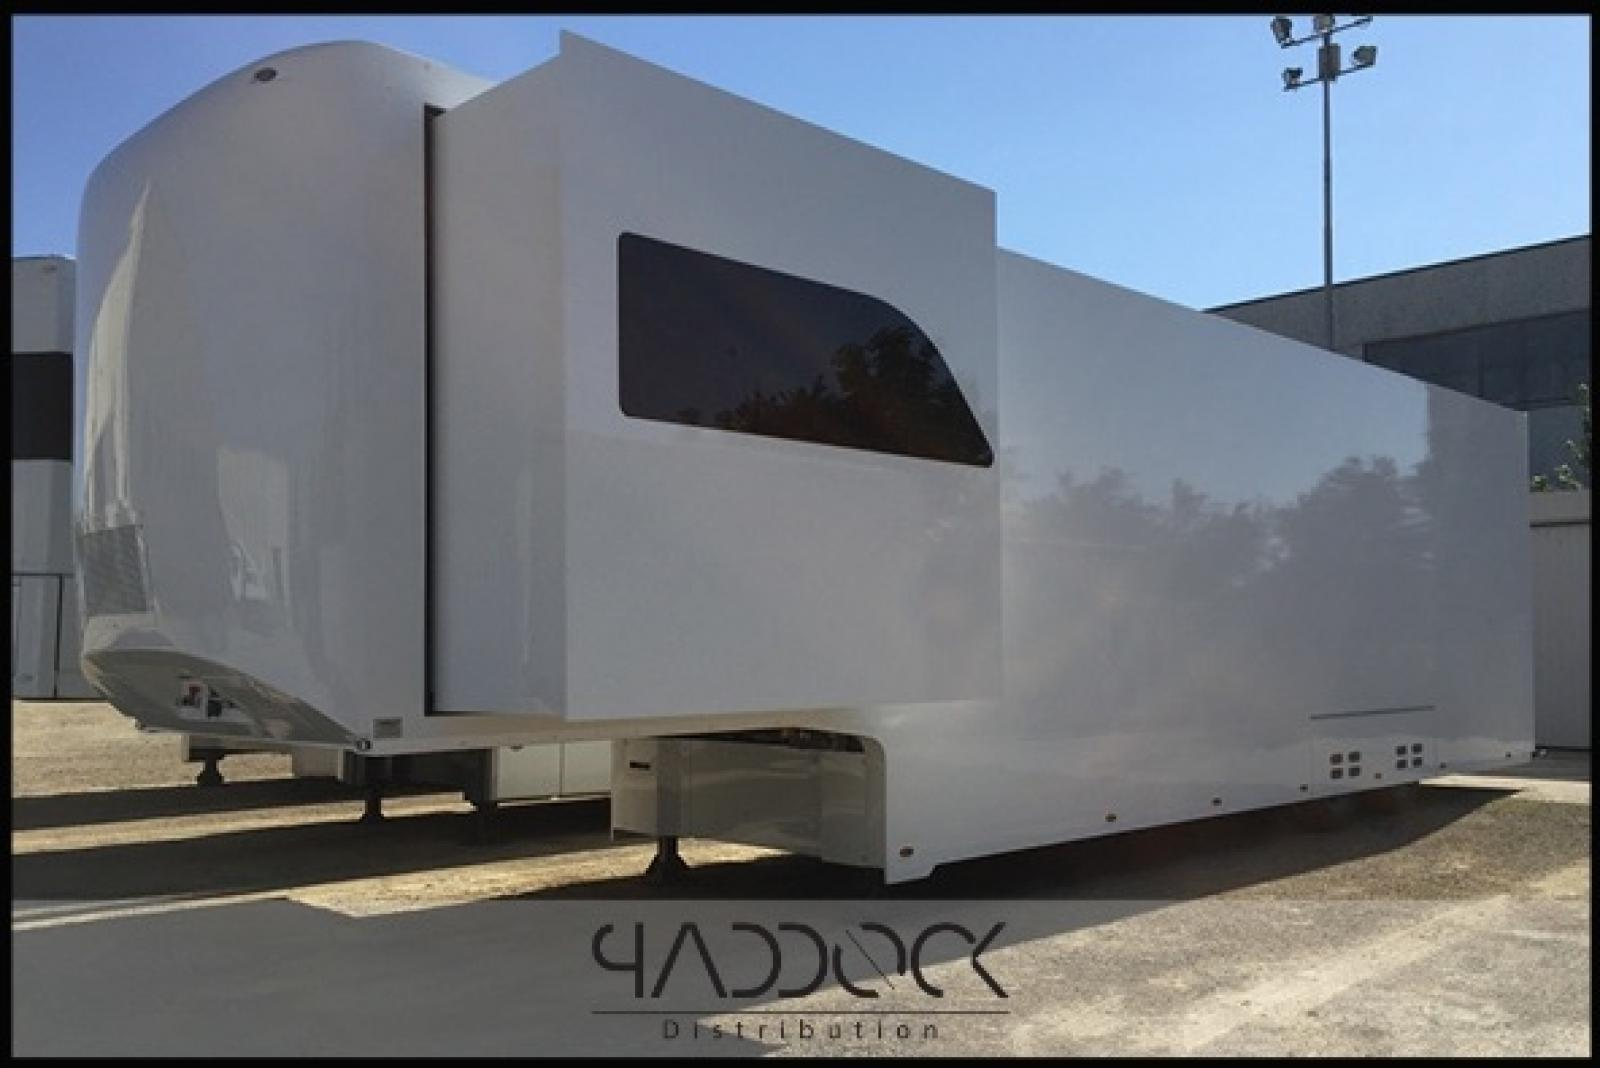 ASTA CAR Z3 SLIDE TRAILER BY PADDOCK DISTRIBUTION - 2